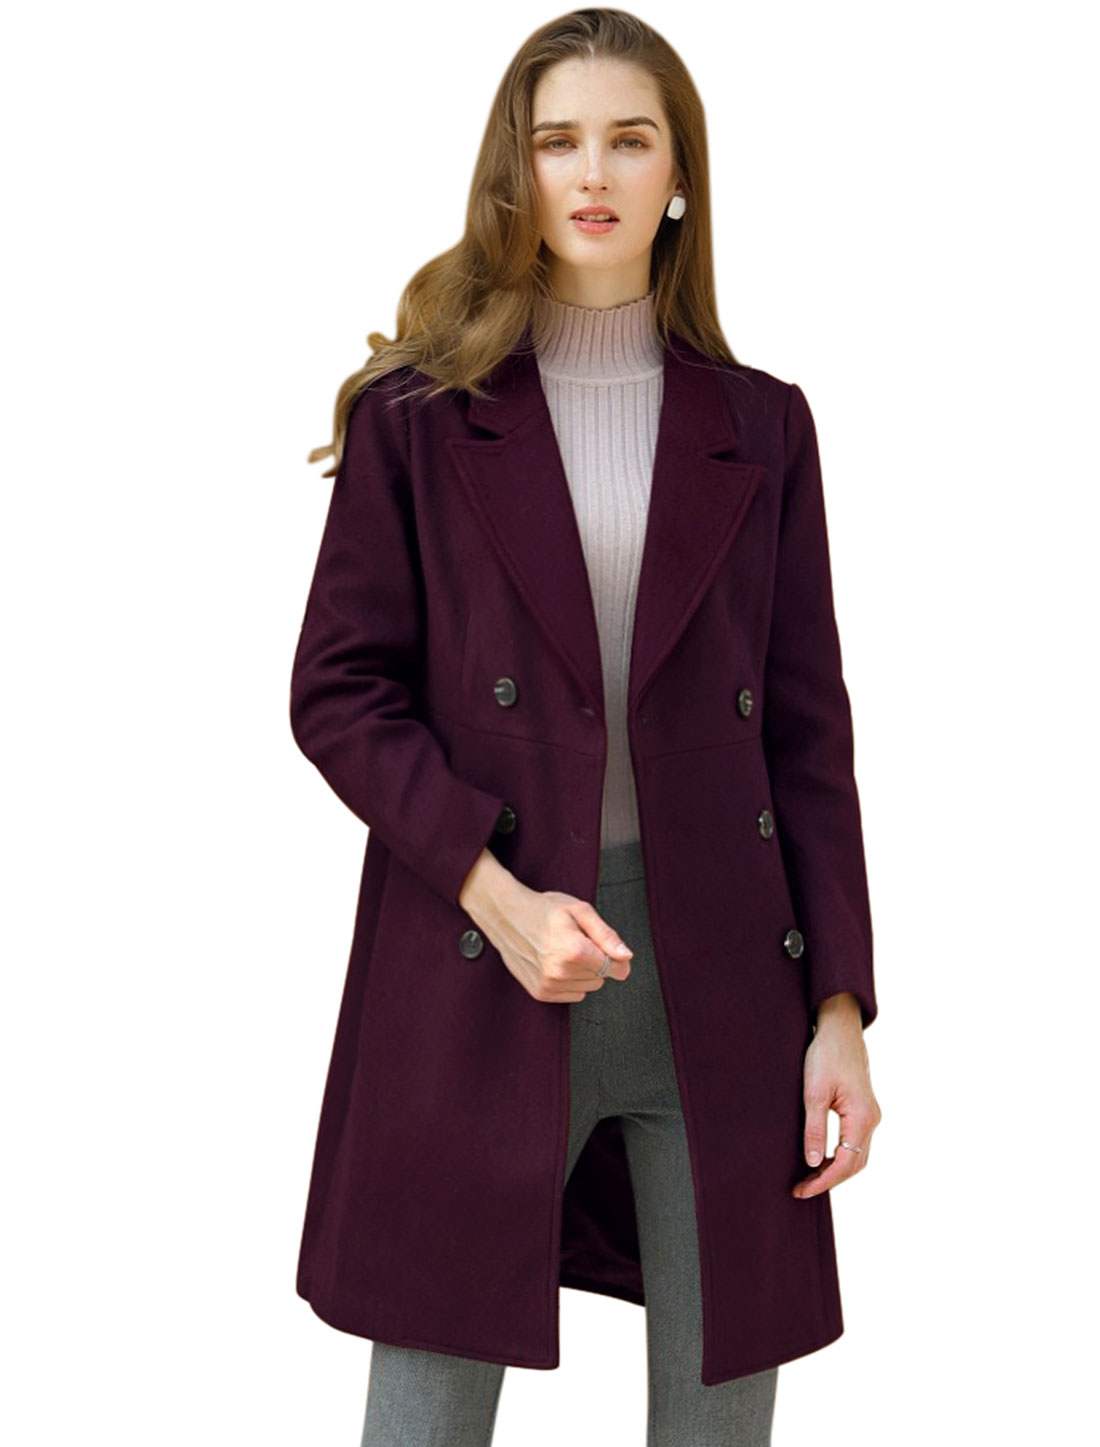 Women's Double Breasted Notched Lapel Winter Long Trench Coat Burgundy XL